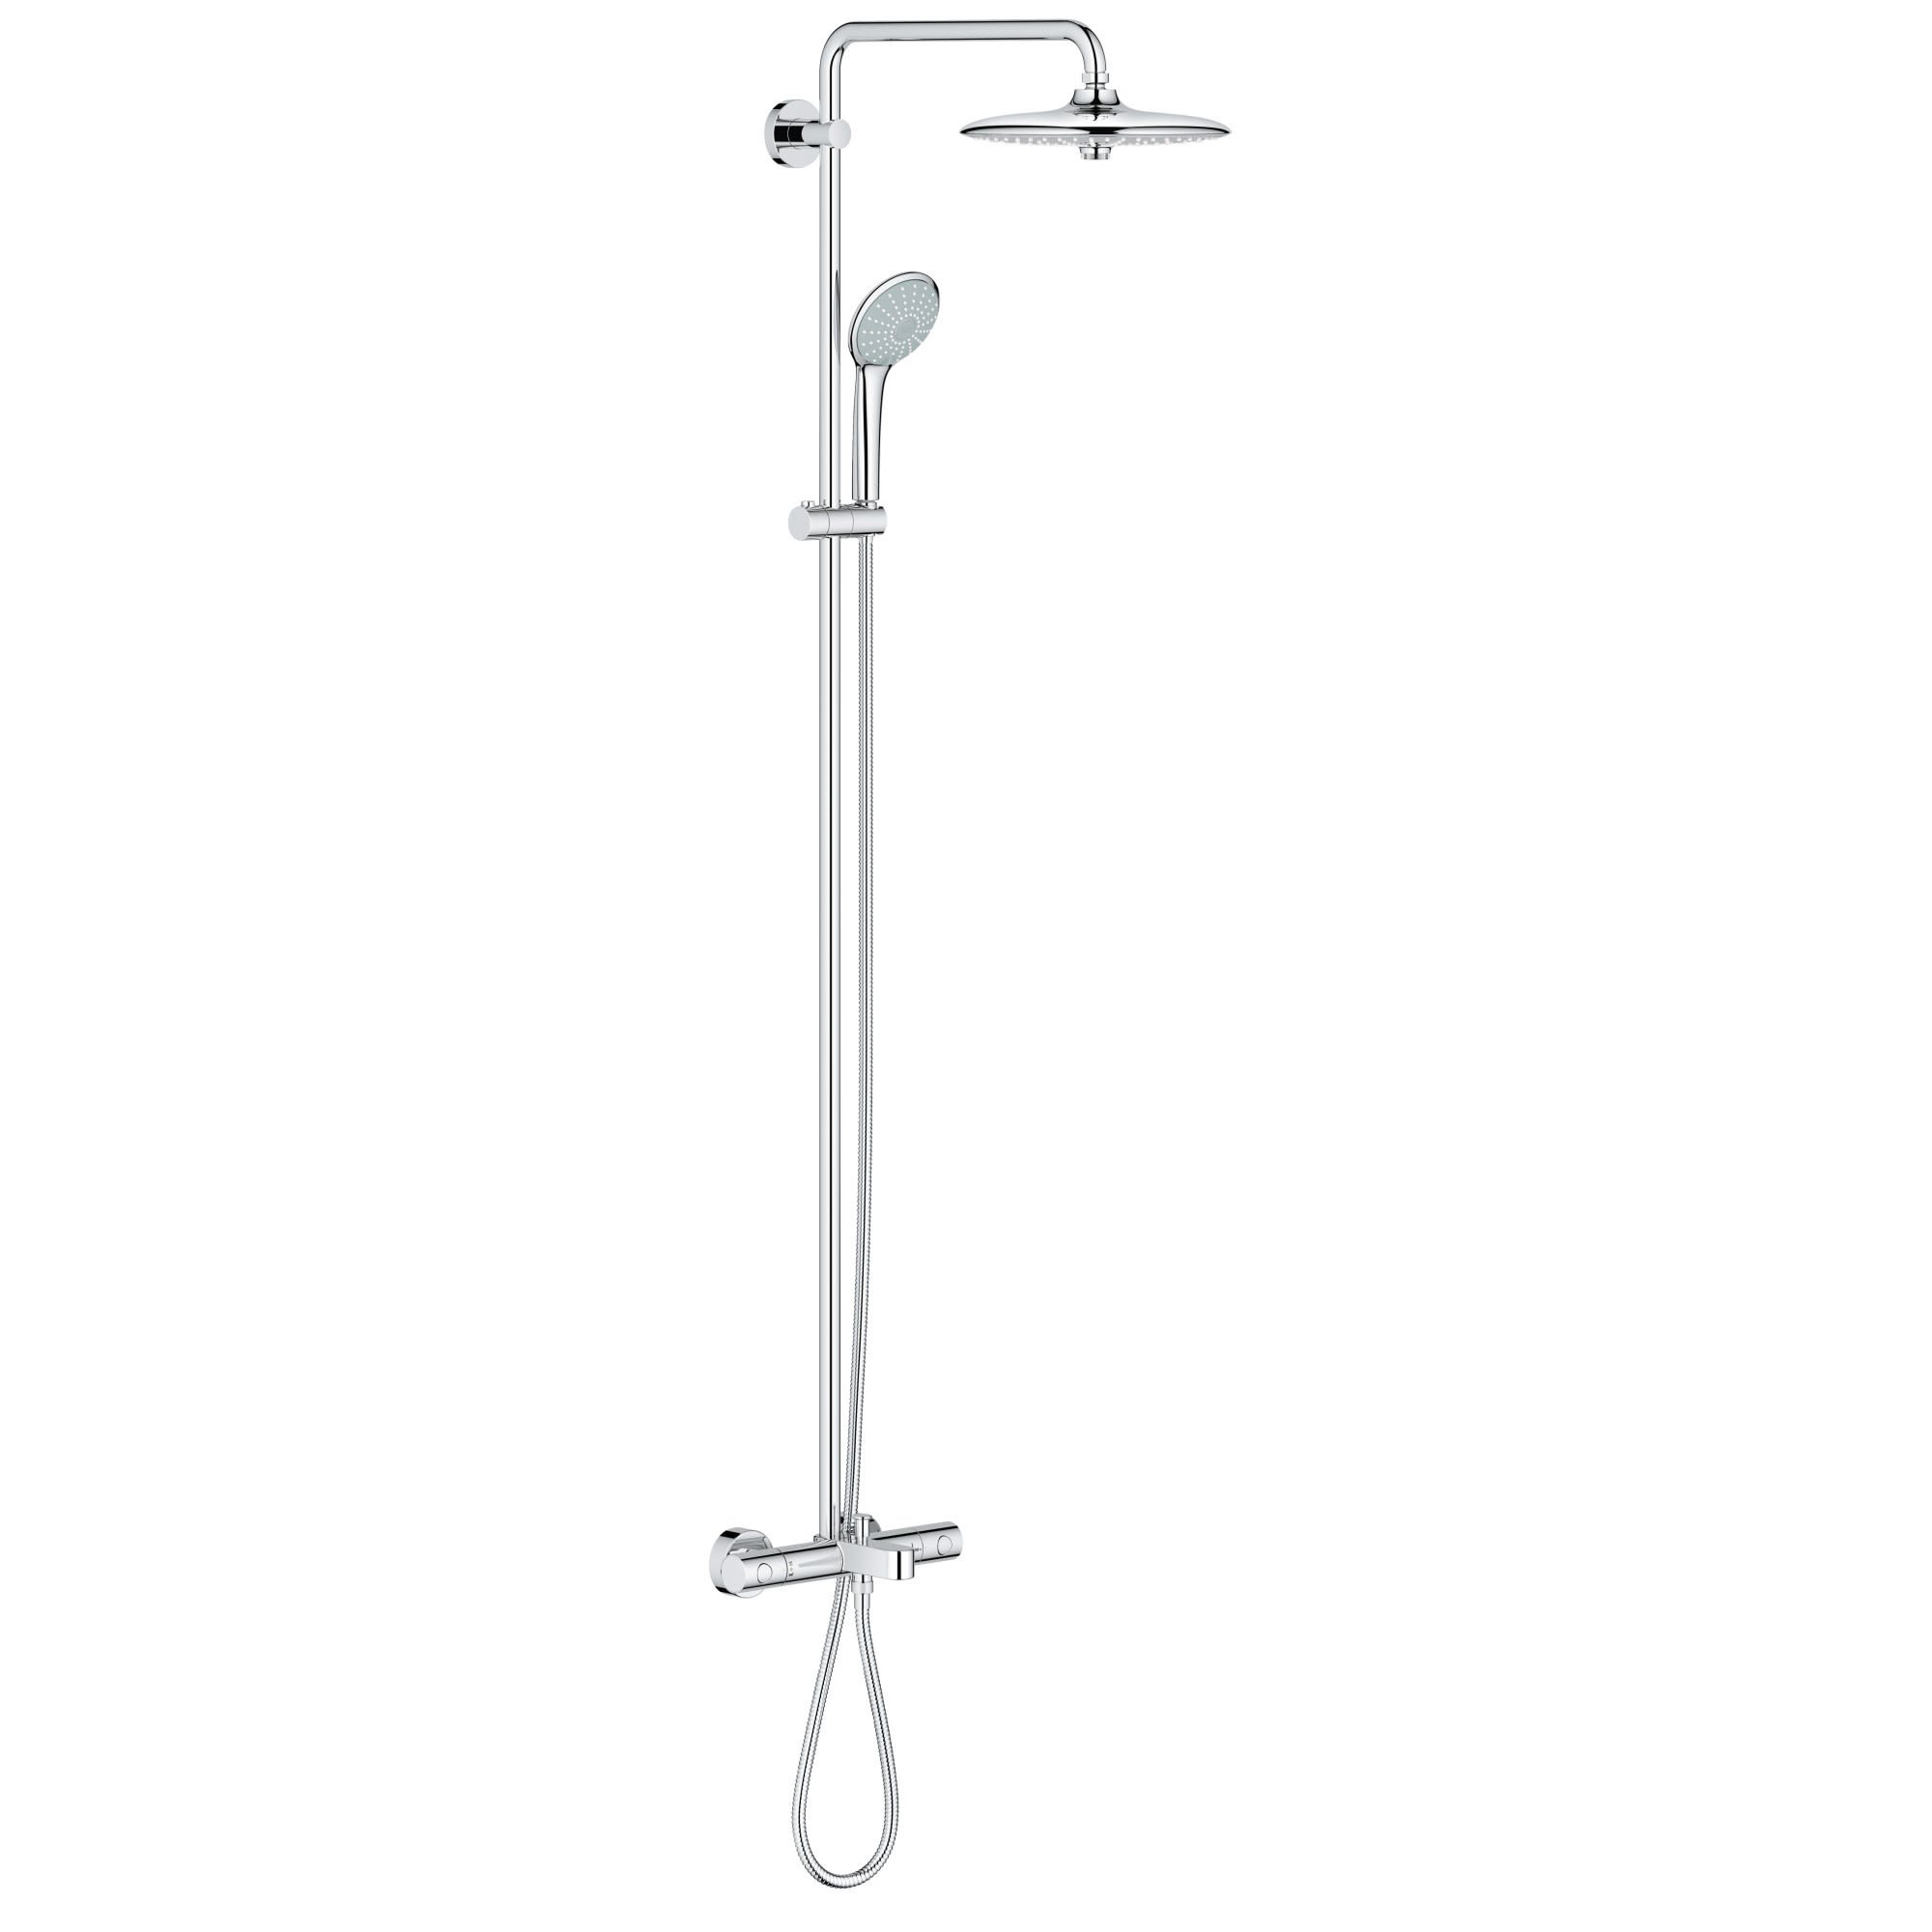 Grohe 26177001 Starlight Chrome Euphoria 260 Shower System With Multi Function Shower Head Integrated Tub Spout Slide Bar Hand Shower And 17 3 4 Swivel Shower Arm Faucetdirect Com